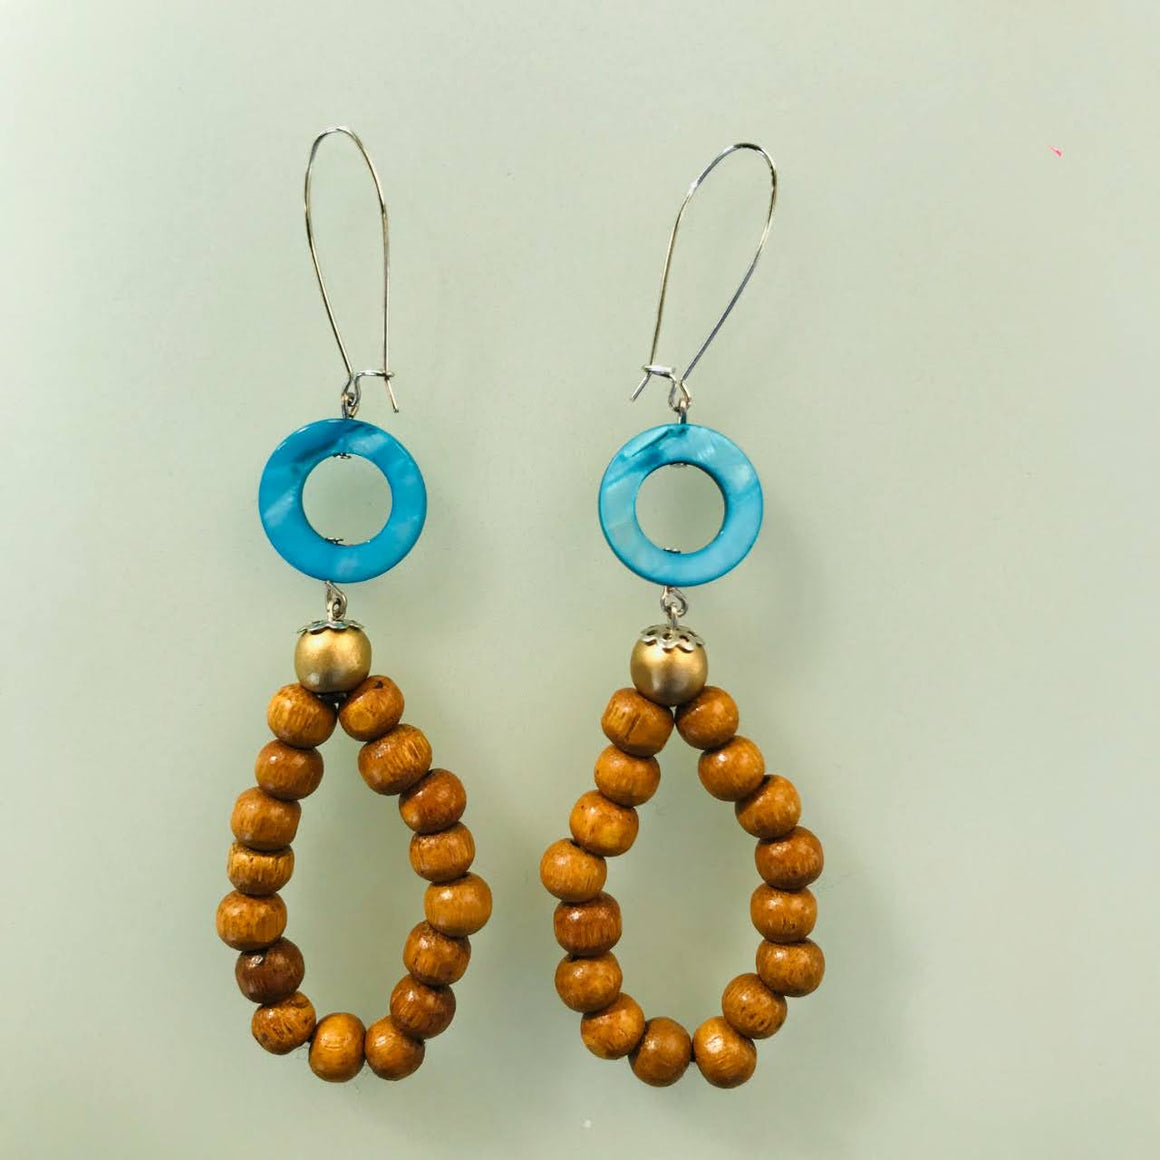 Zozi Earrings